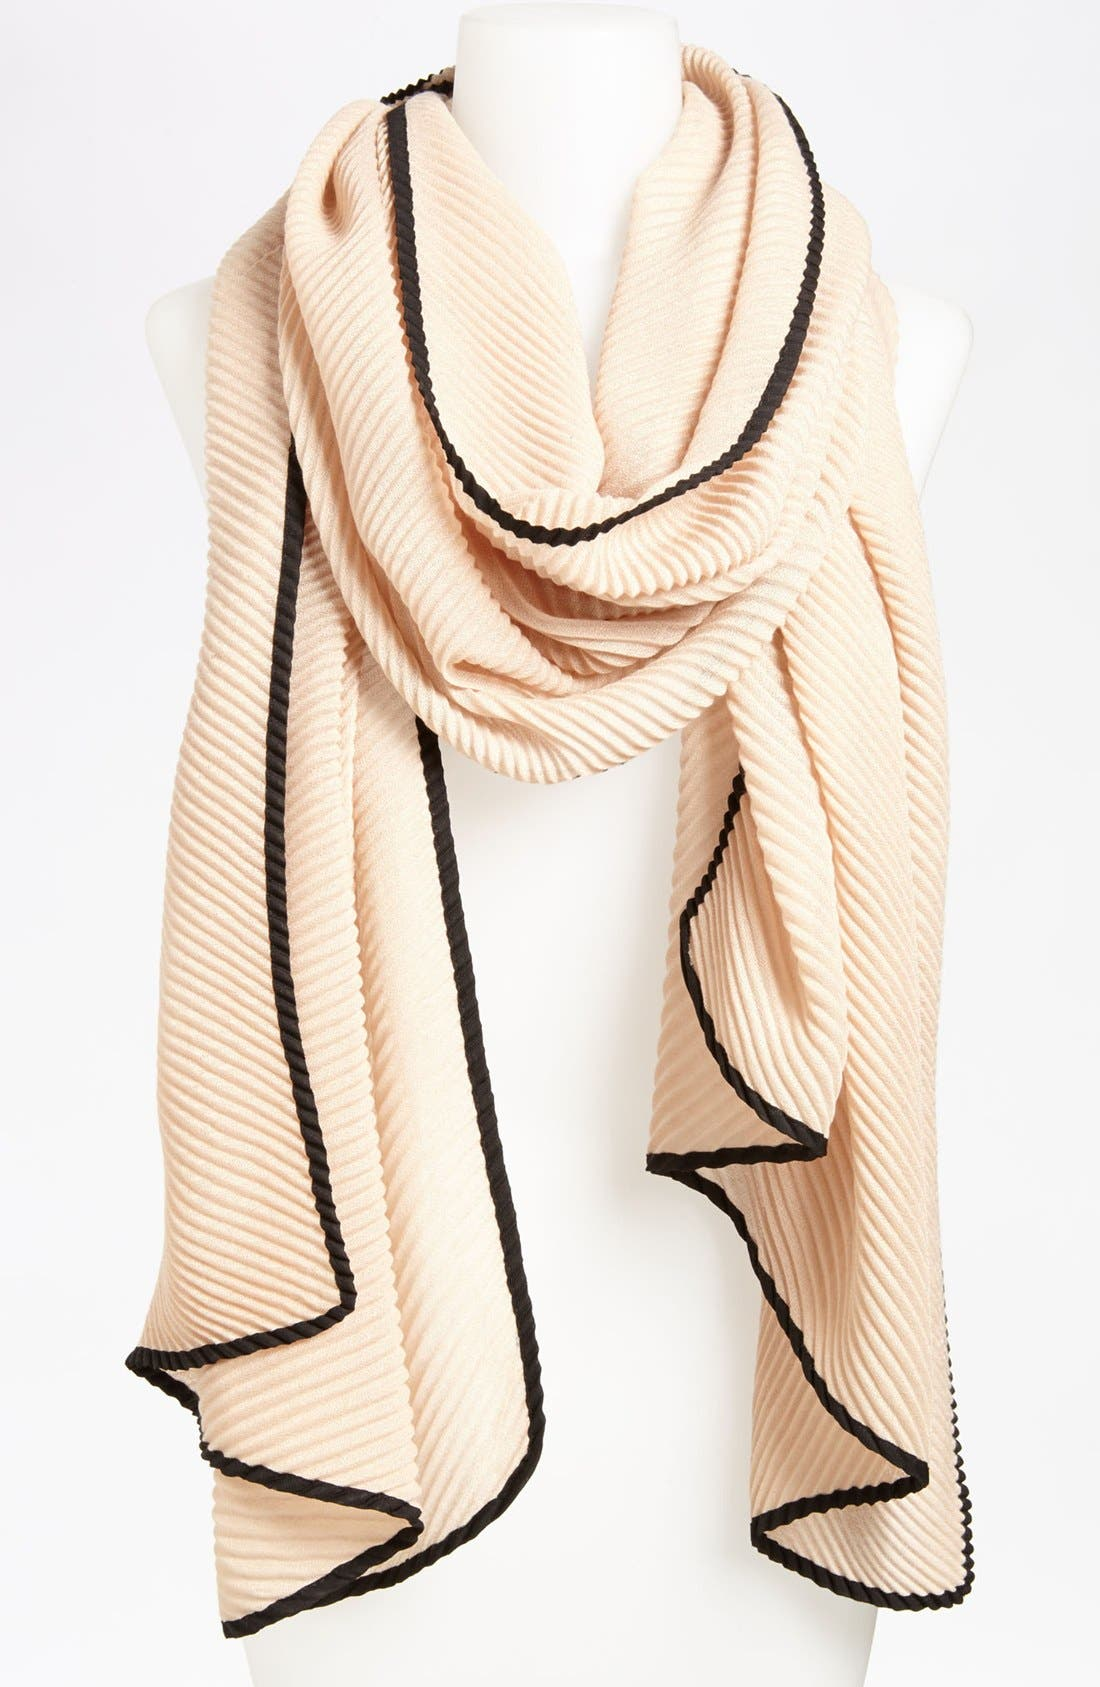 Main Image - Roffe Accessories Pleat Scarf